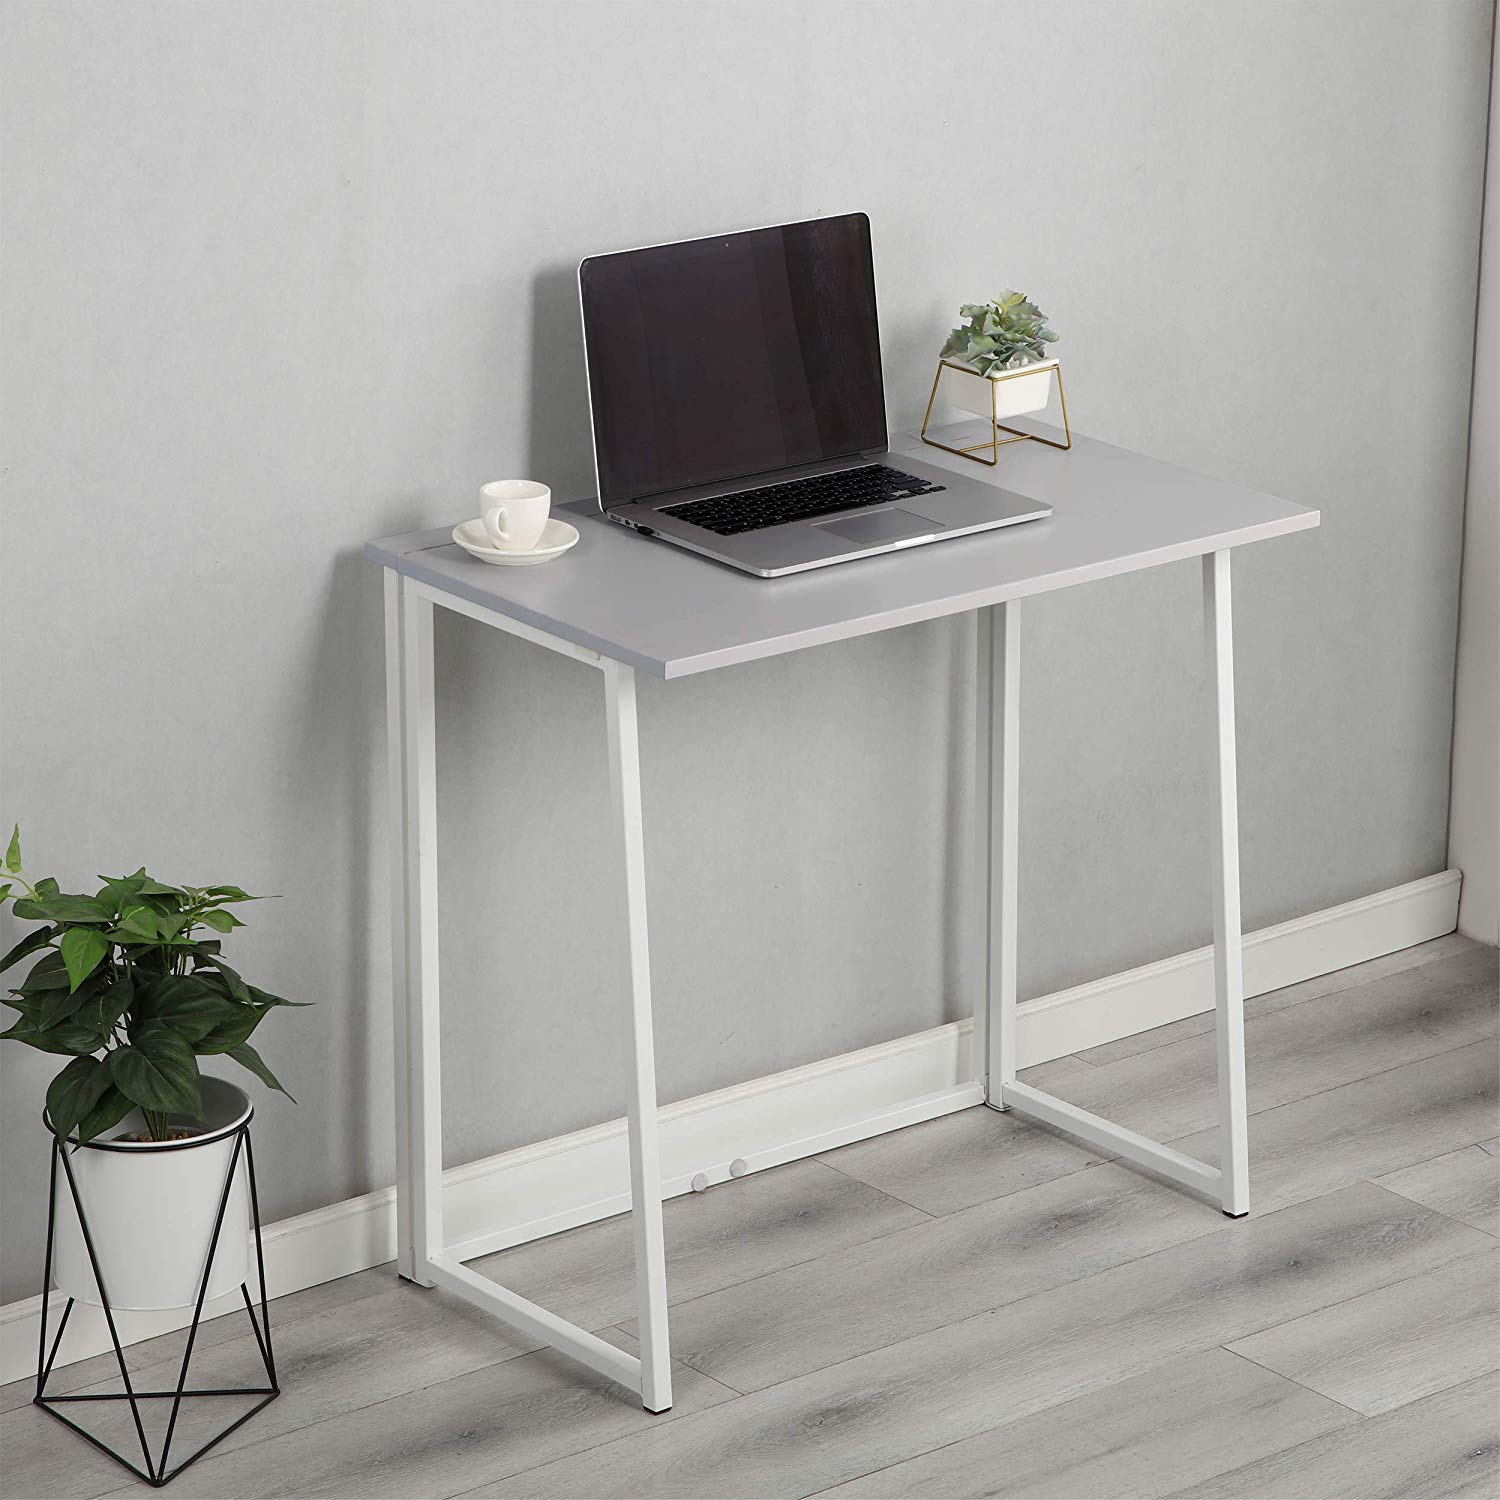 Cherry Tree Furniture Compact Folding Computer Desk Laptop Desktop Table in Grey